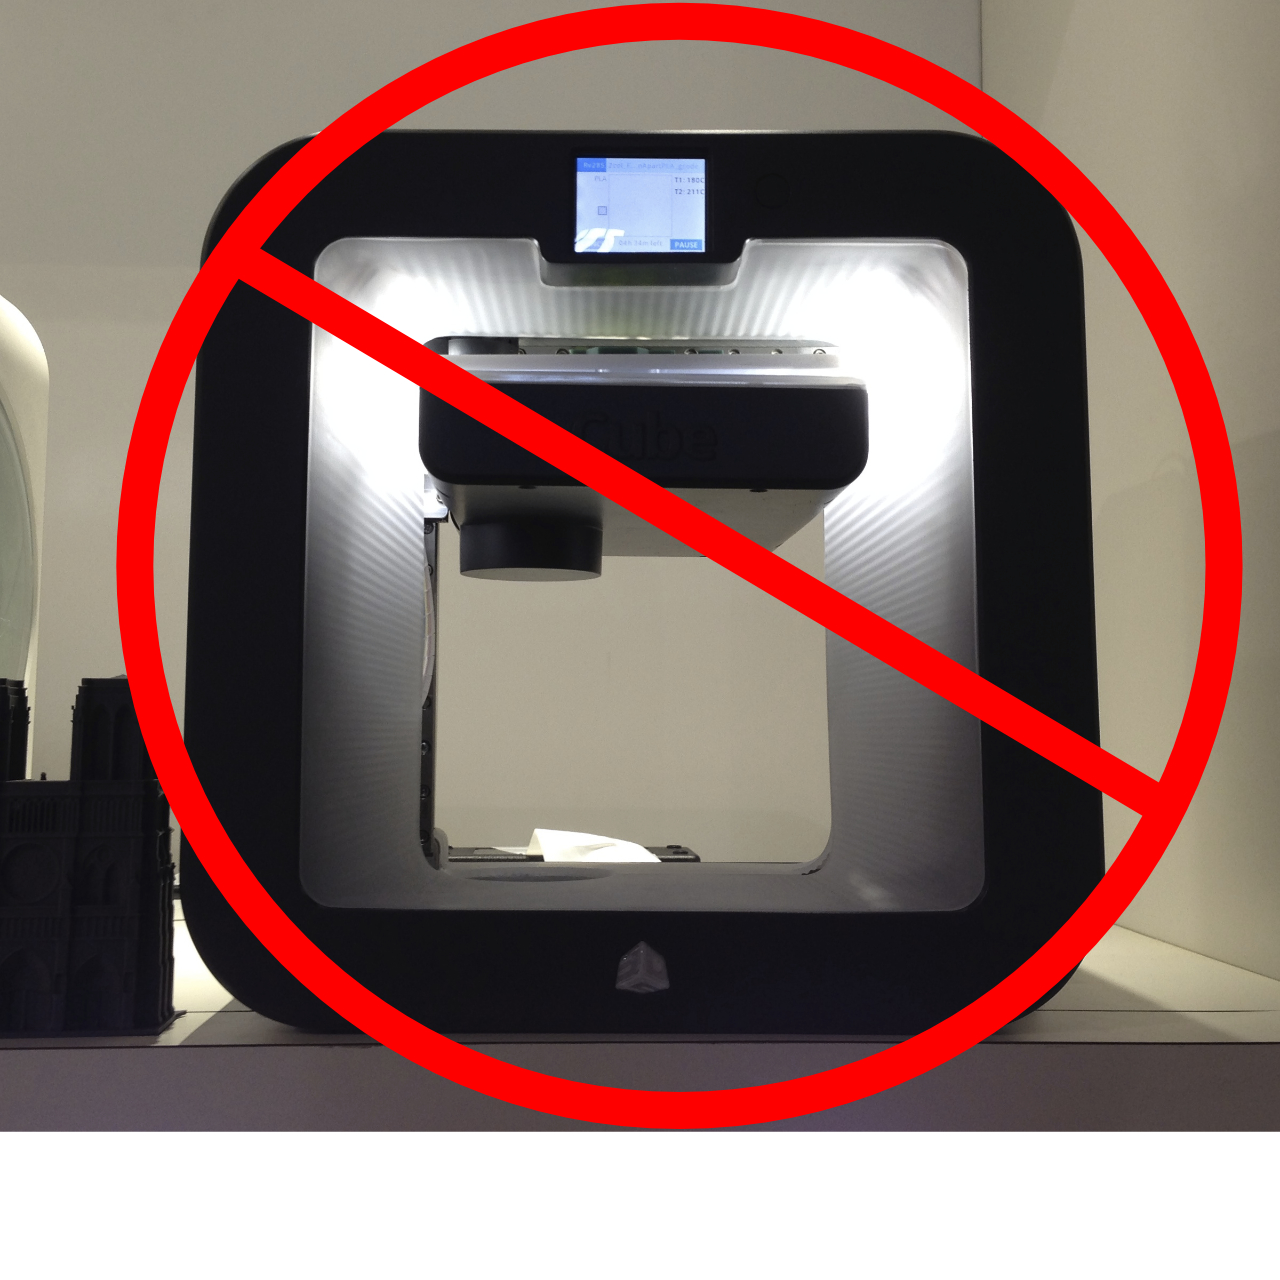 BREAKING: 3D Systems Kills The Cube – And Cubify!